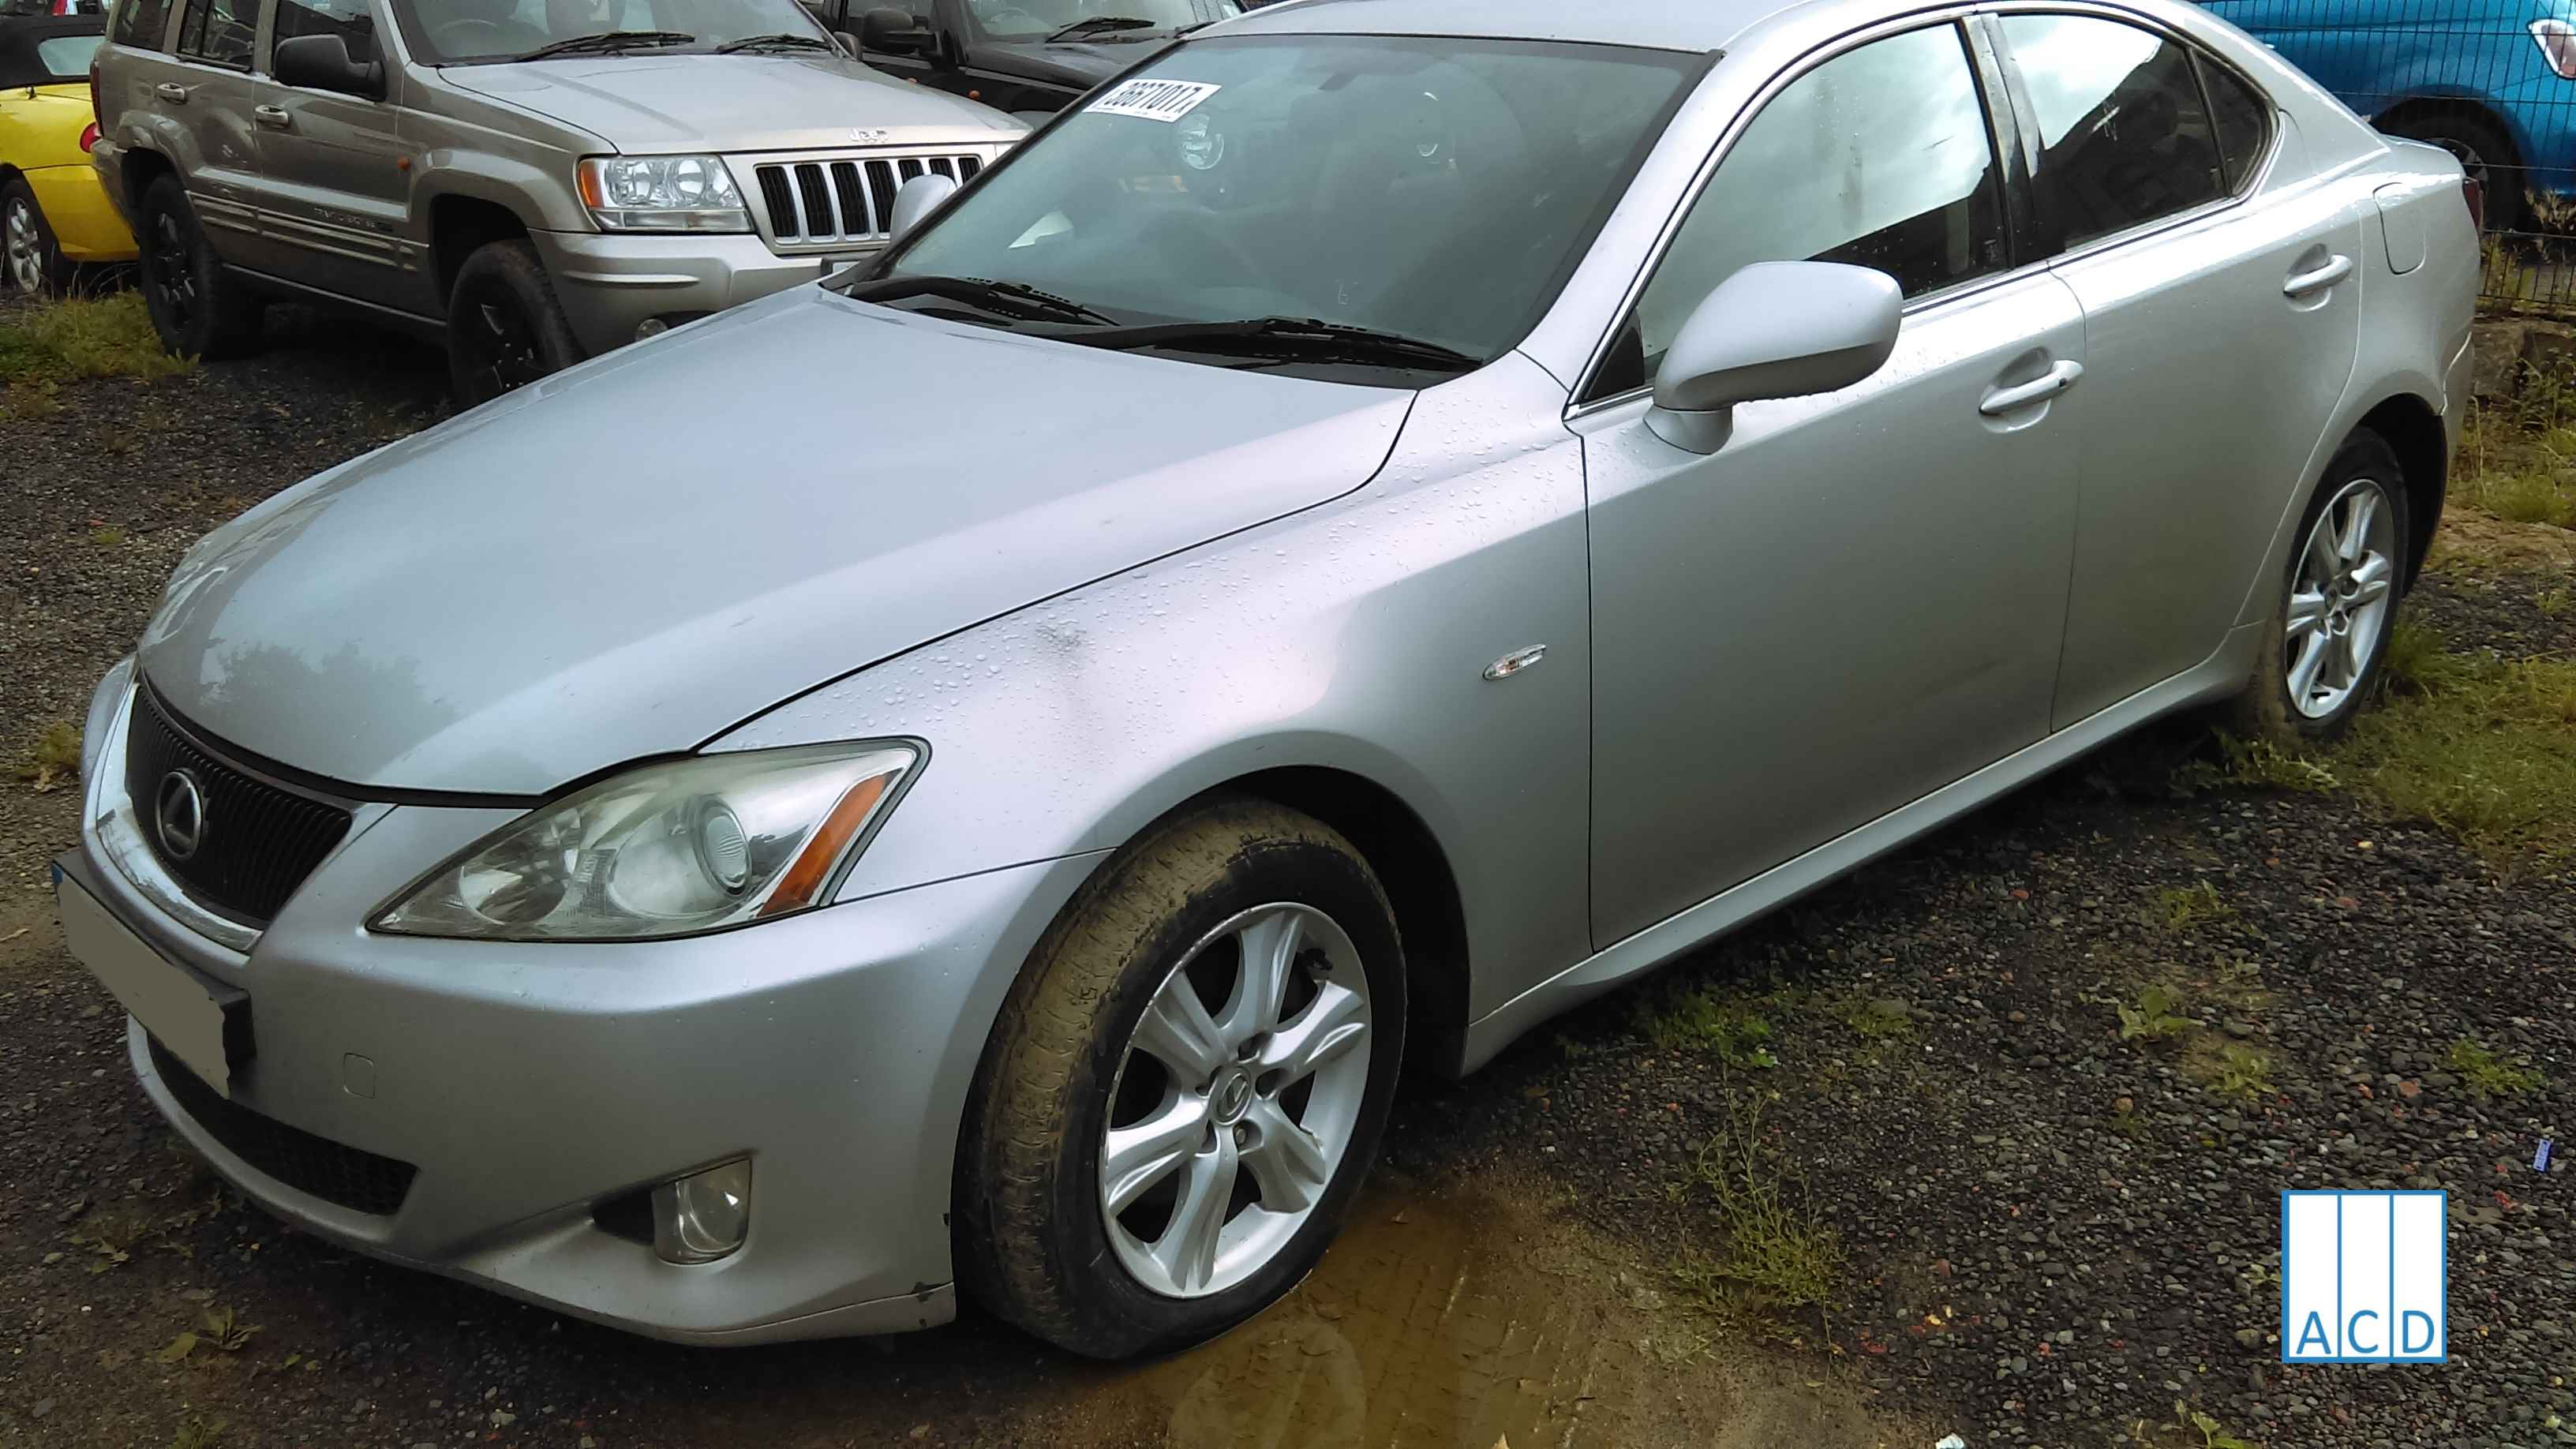 Lexus IS 220D 2.2L Diesel 6-speed manual 2007